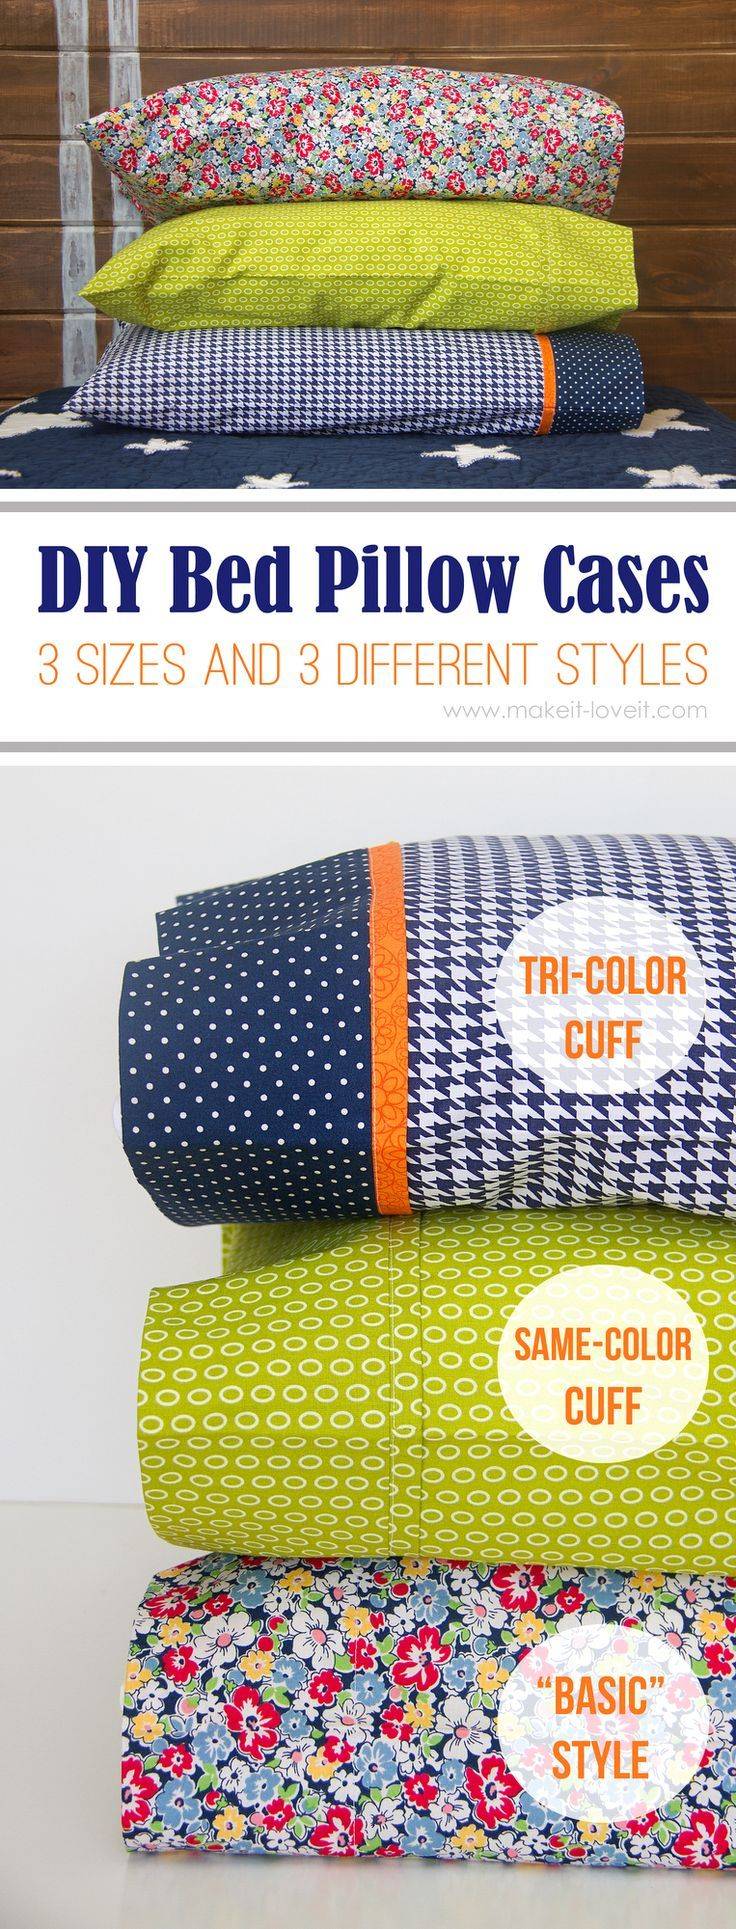 DIY Bed Pillow Cases 3 SIZES AND IN 3 DIFFERENT COLOURS & Best 25+ Crochet pillow cases ideas on Pinterest | Retro homemade ... pillowsntoast.com